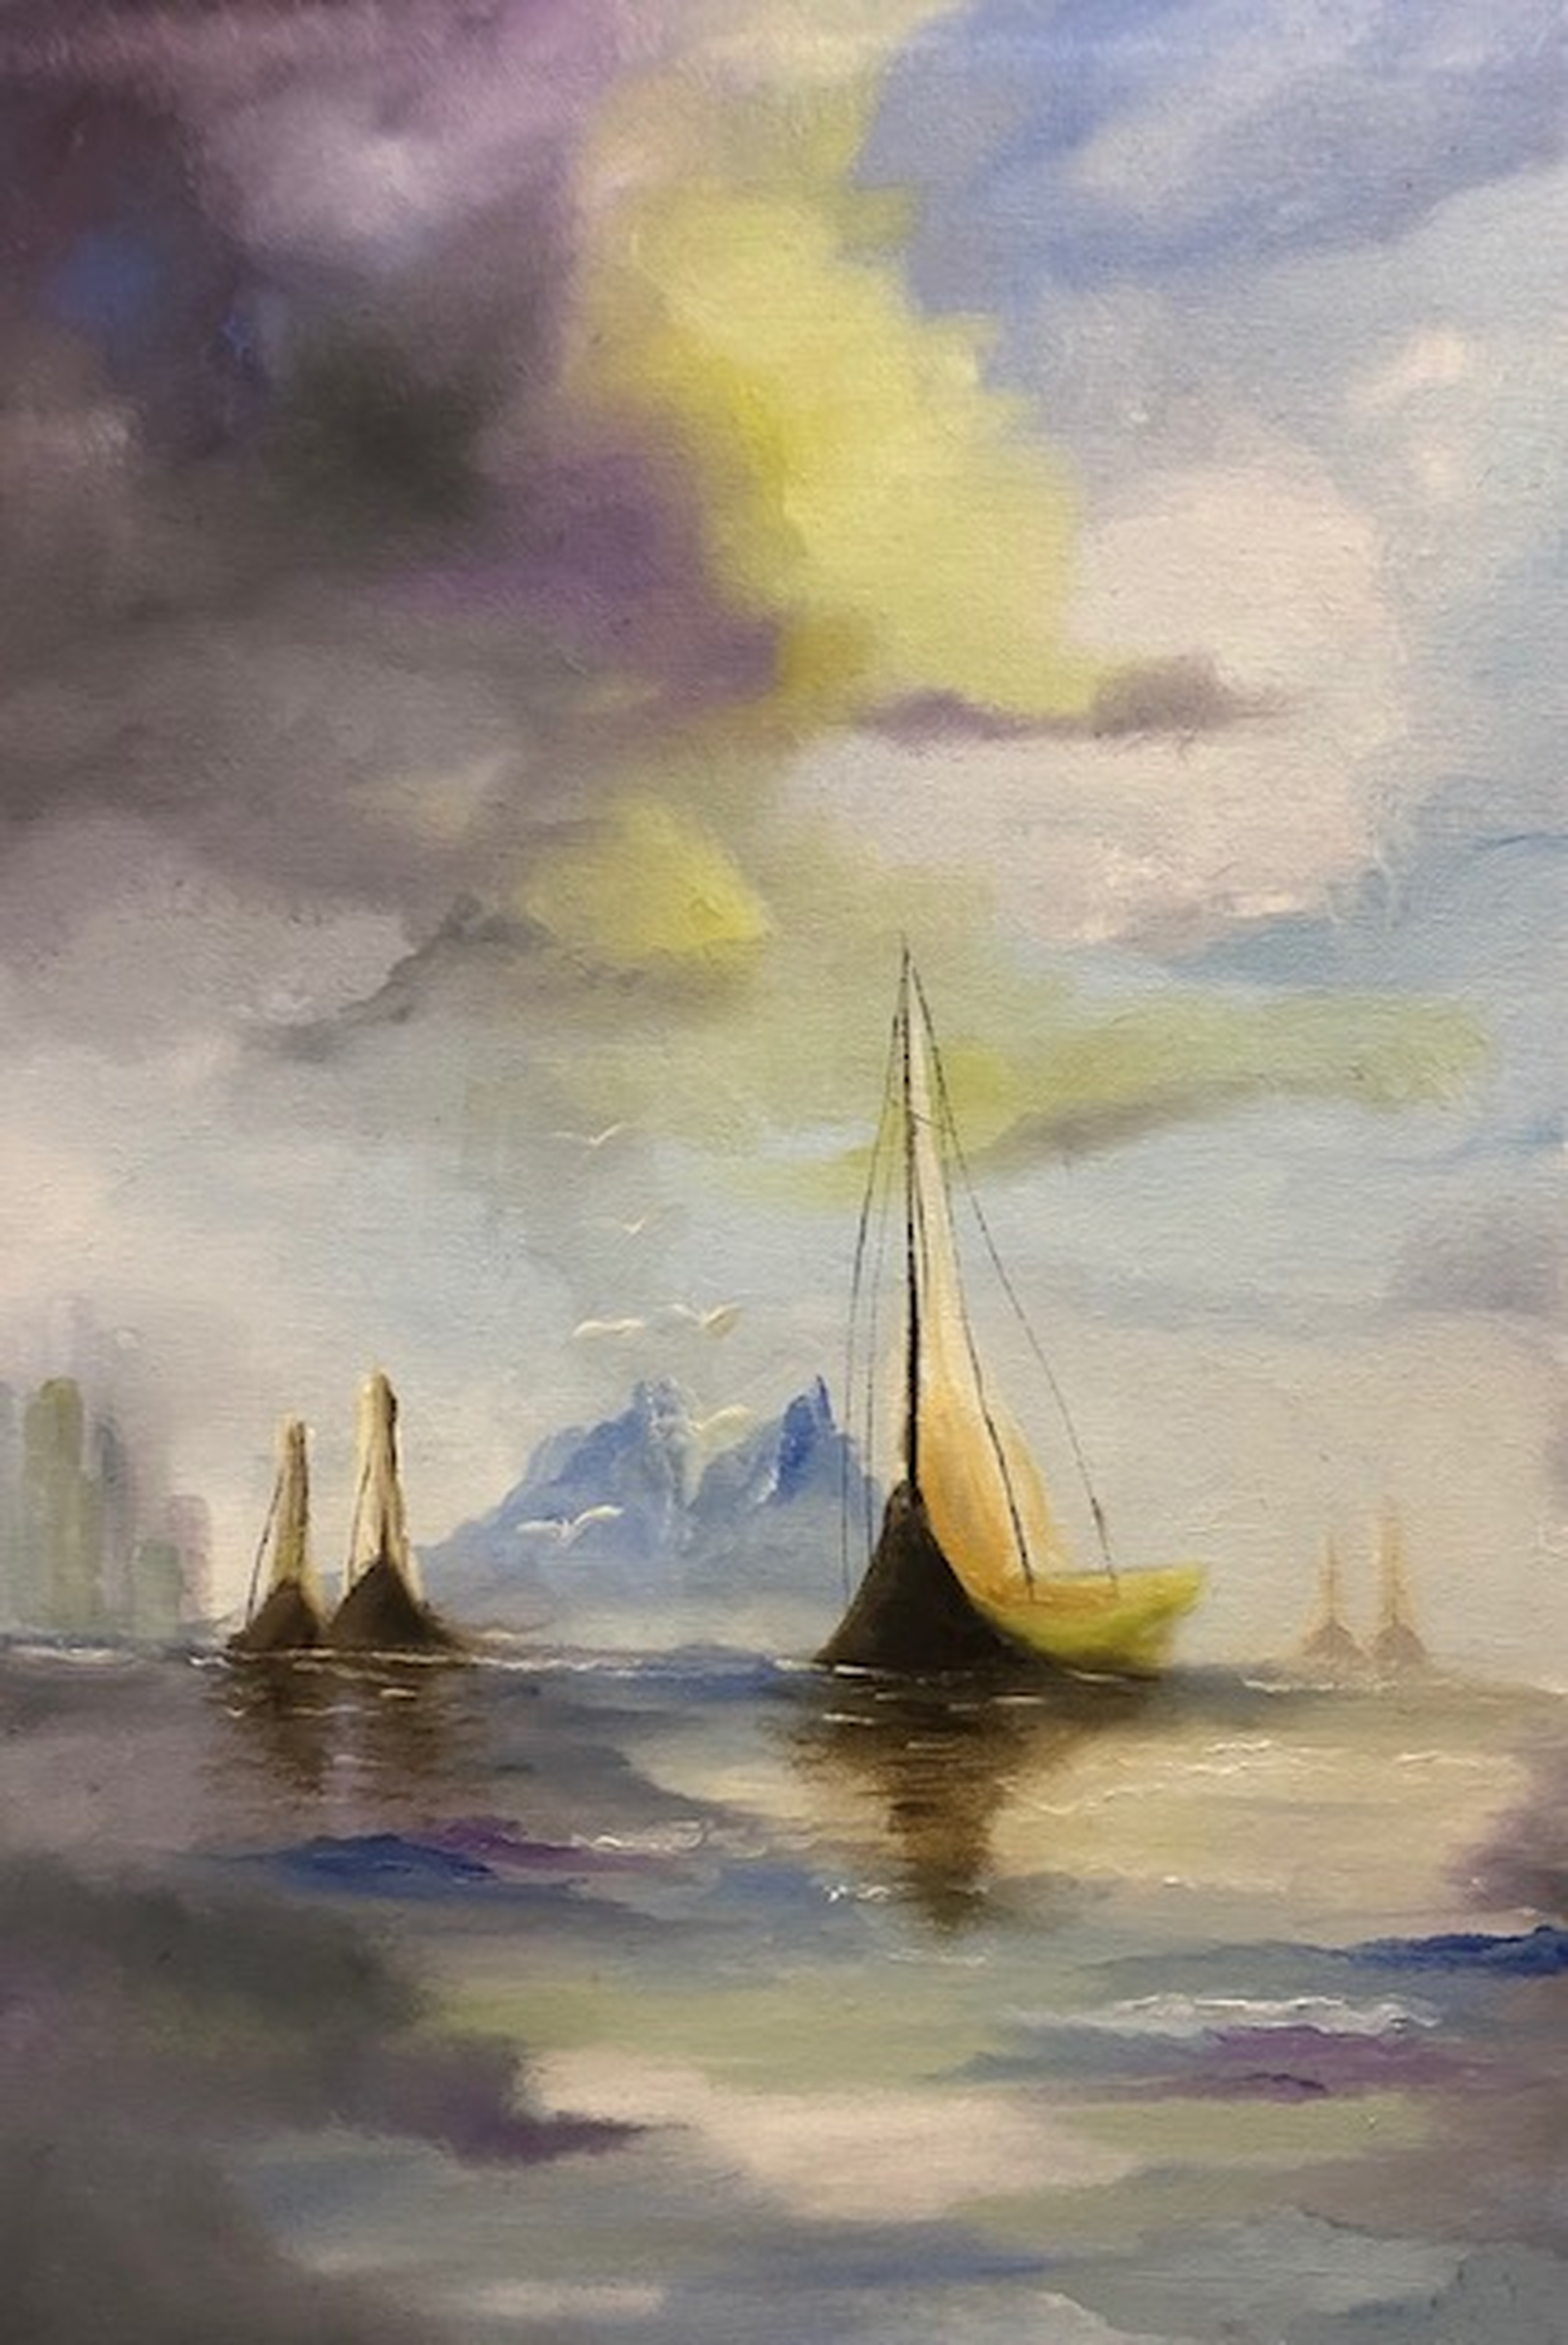 Sailboats outside Barcelona by Patrick Irish | ArtworkNetwork.com